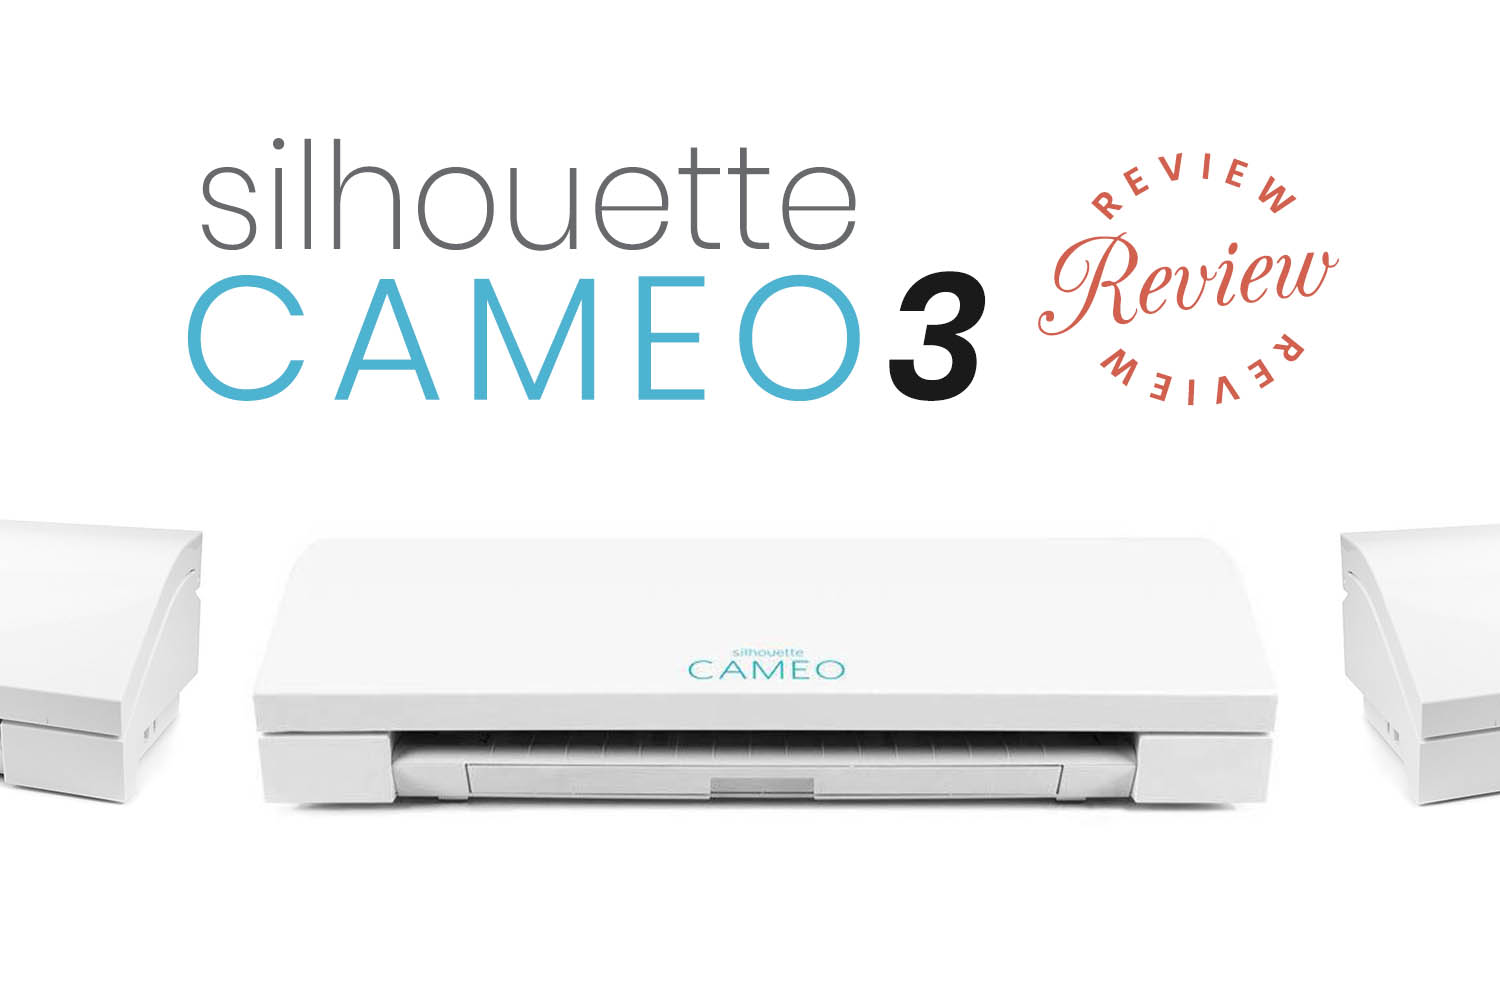 Silhouette CAMEO 3 Review